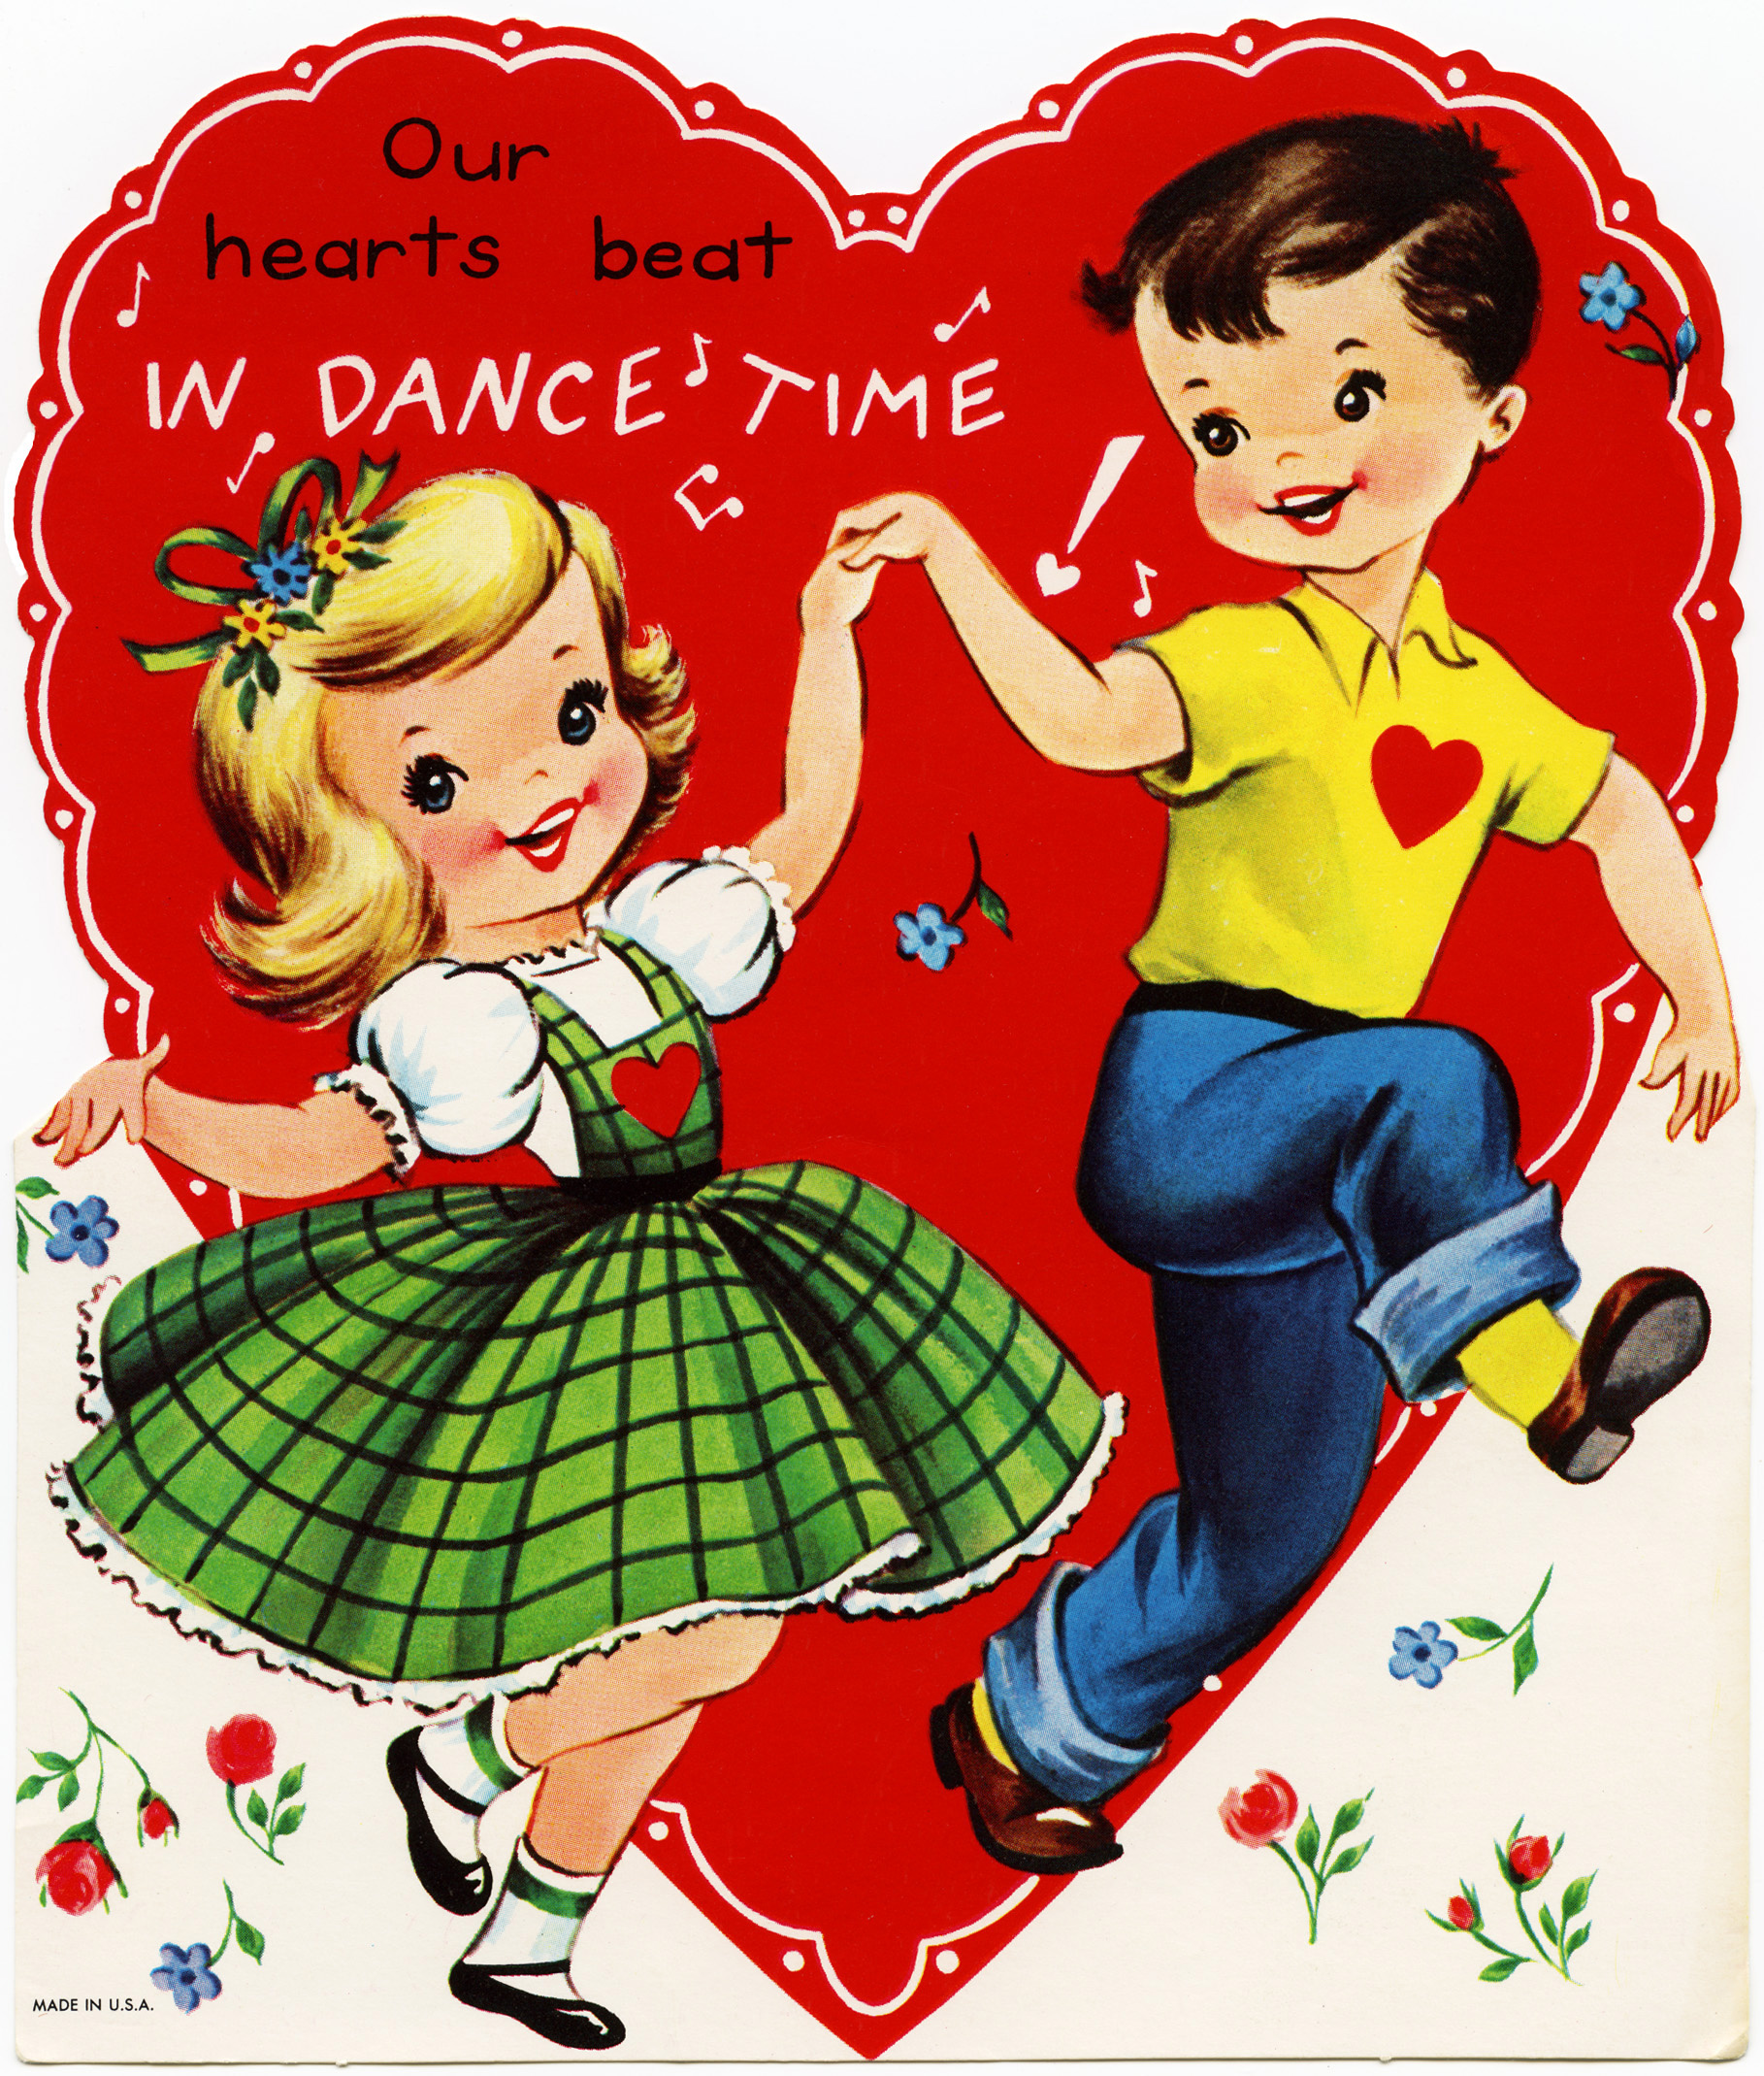 dance valentine, retro children valentine, dance time valentine ...